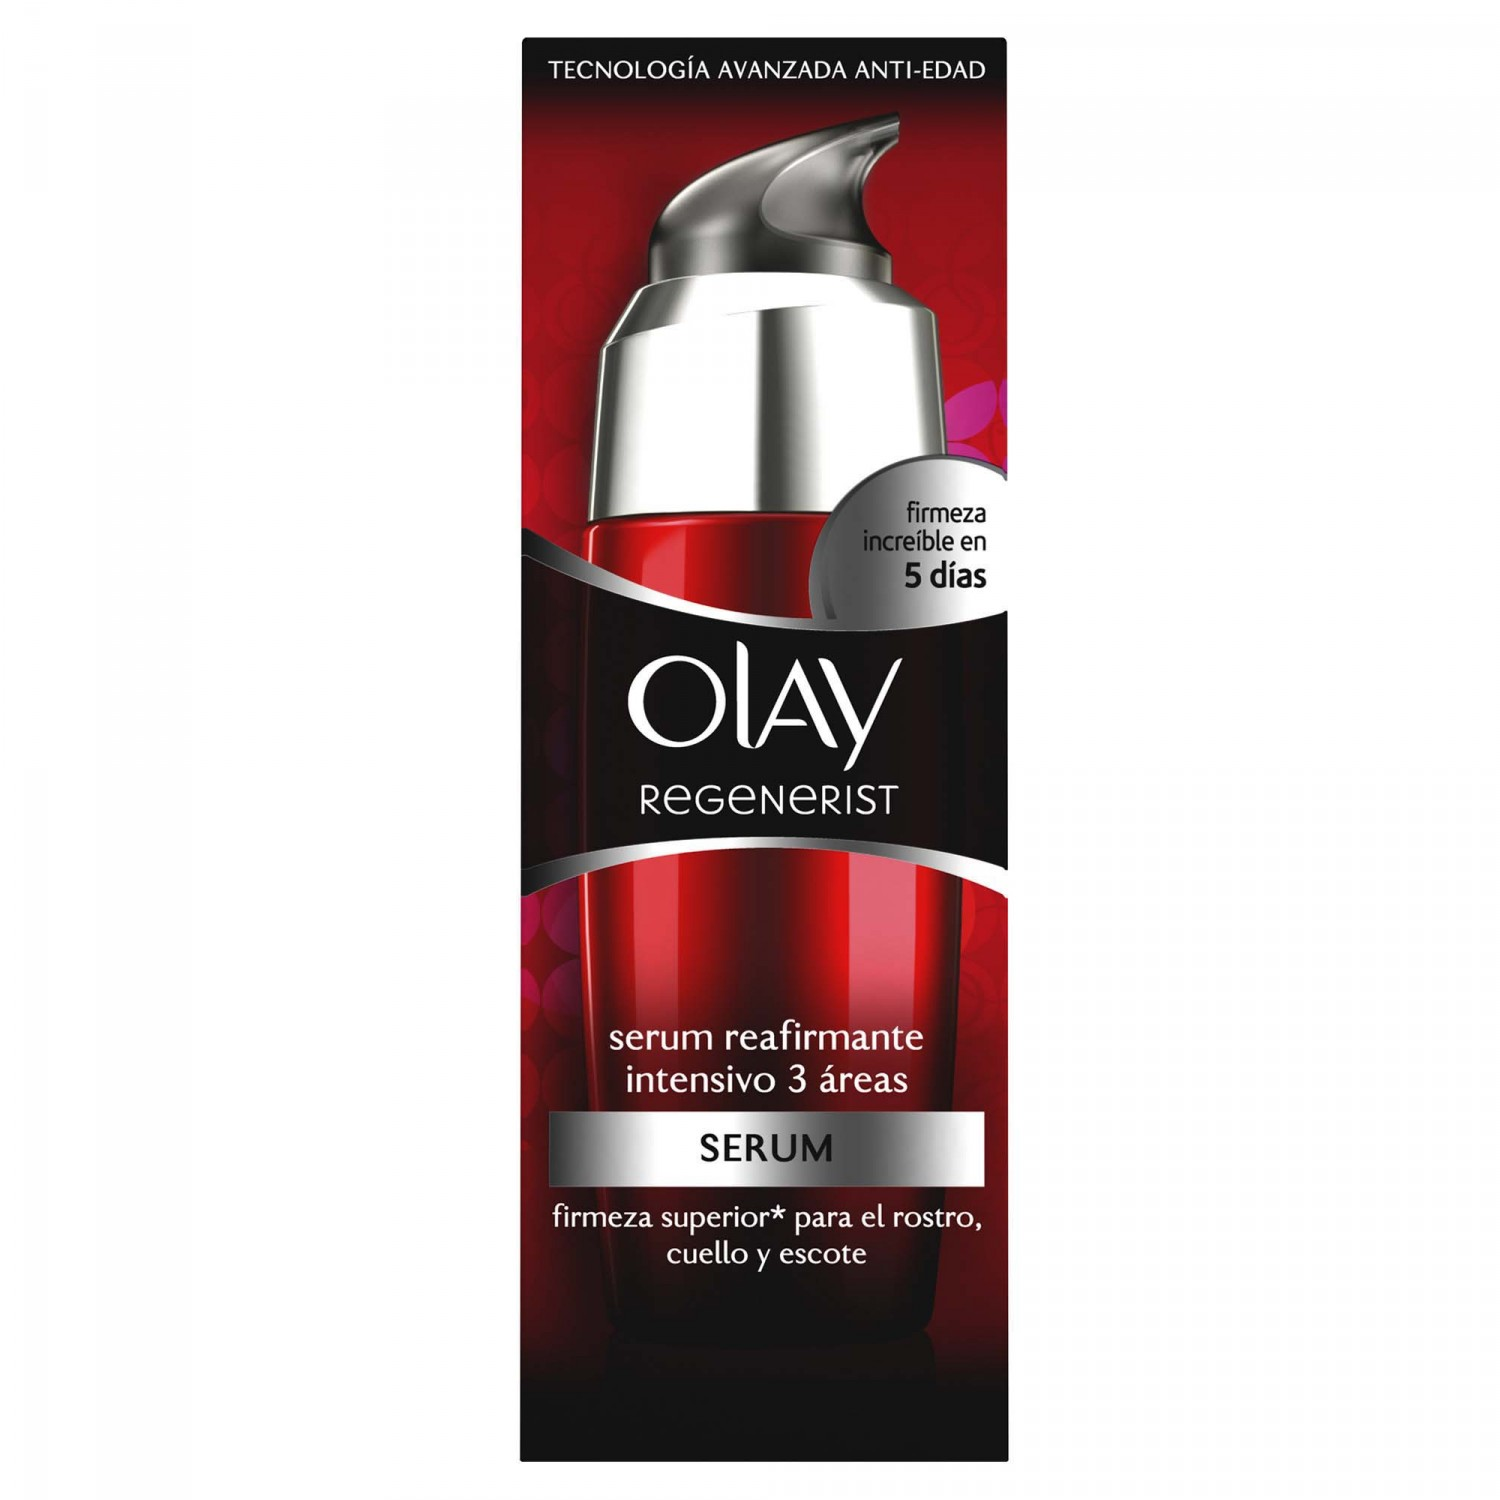 Olay serum regenerist 3 area cuidado intensivo de 50ml.